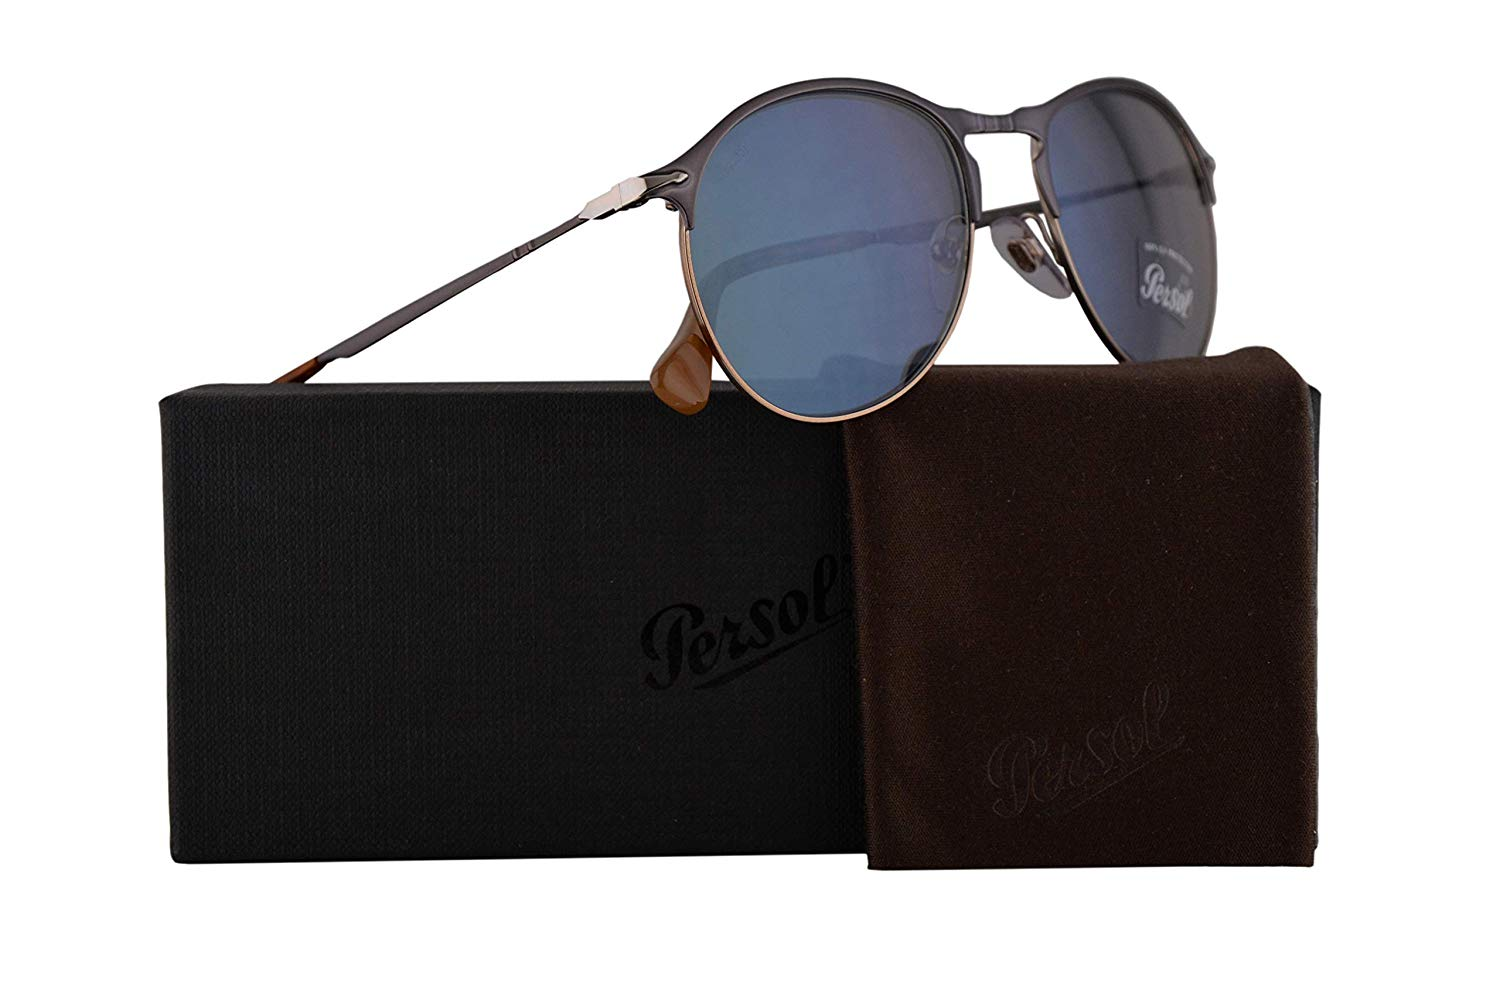 11590f0a37 Get Quotations · Persol PO7649S Sunglasses Blue Light Brown w Light Blue  Lens 53mm 107156 PO 7649-